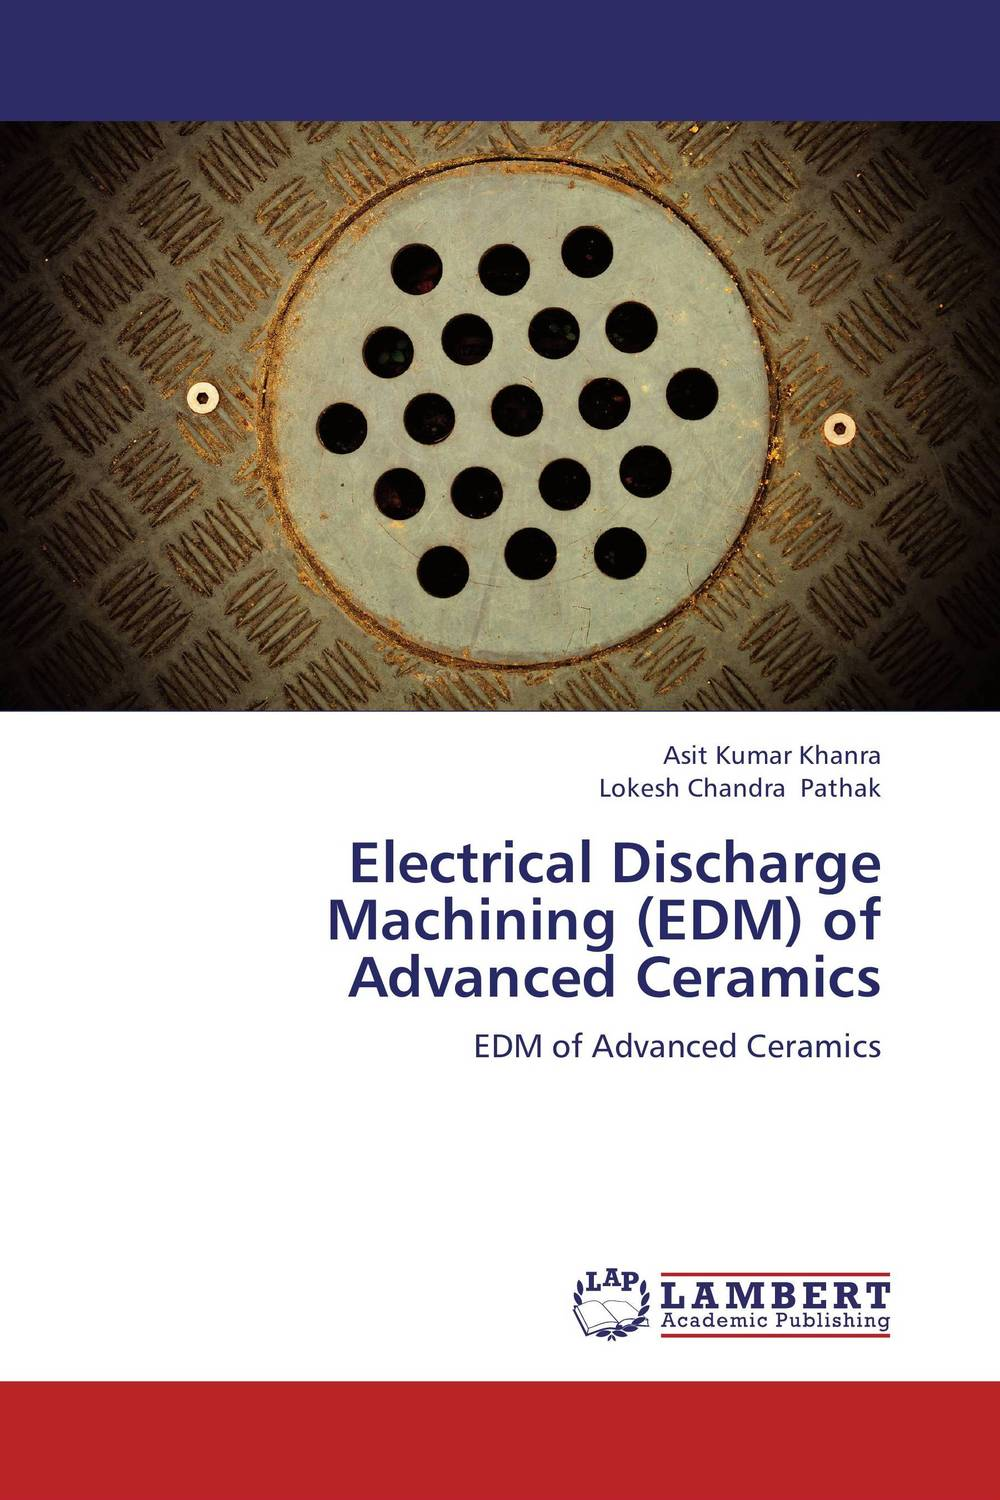 Electrical Discharge Machining (EDM)  of Advanced Ceramics